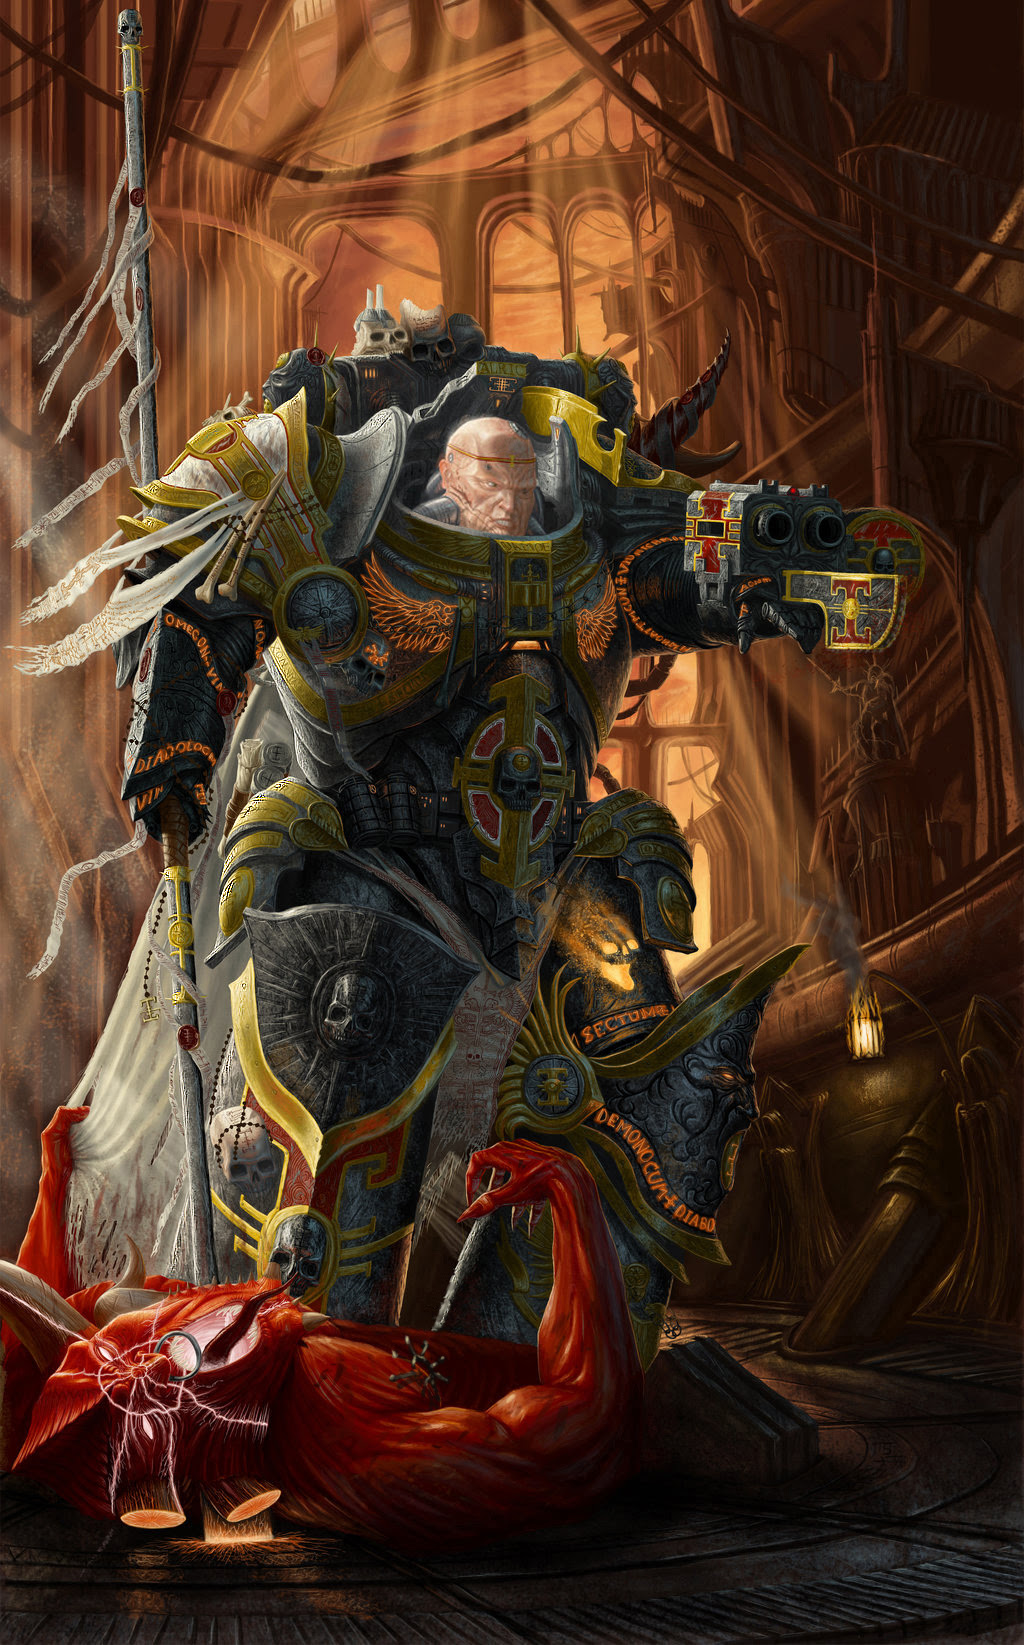 What Are Your Favorite Concept Art Pieces Of The Imperium? | Page 20 | Warhammer 40,000: Eternal ...